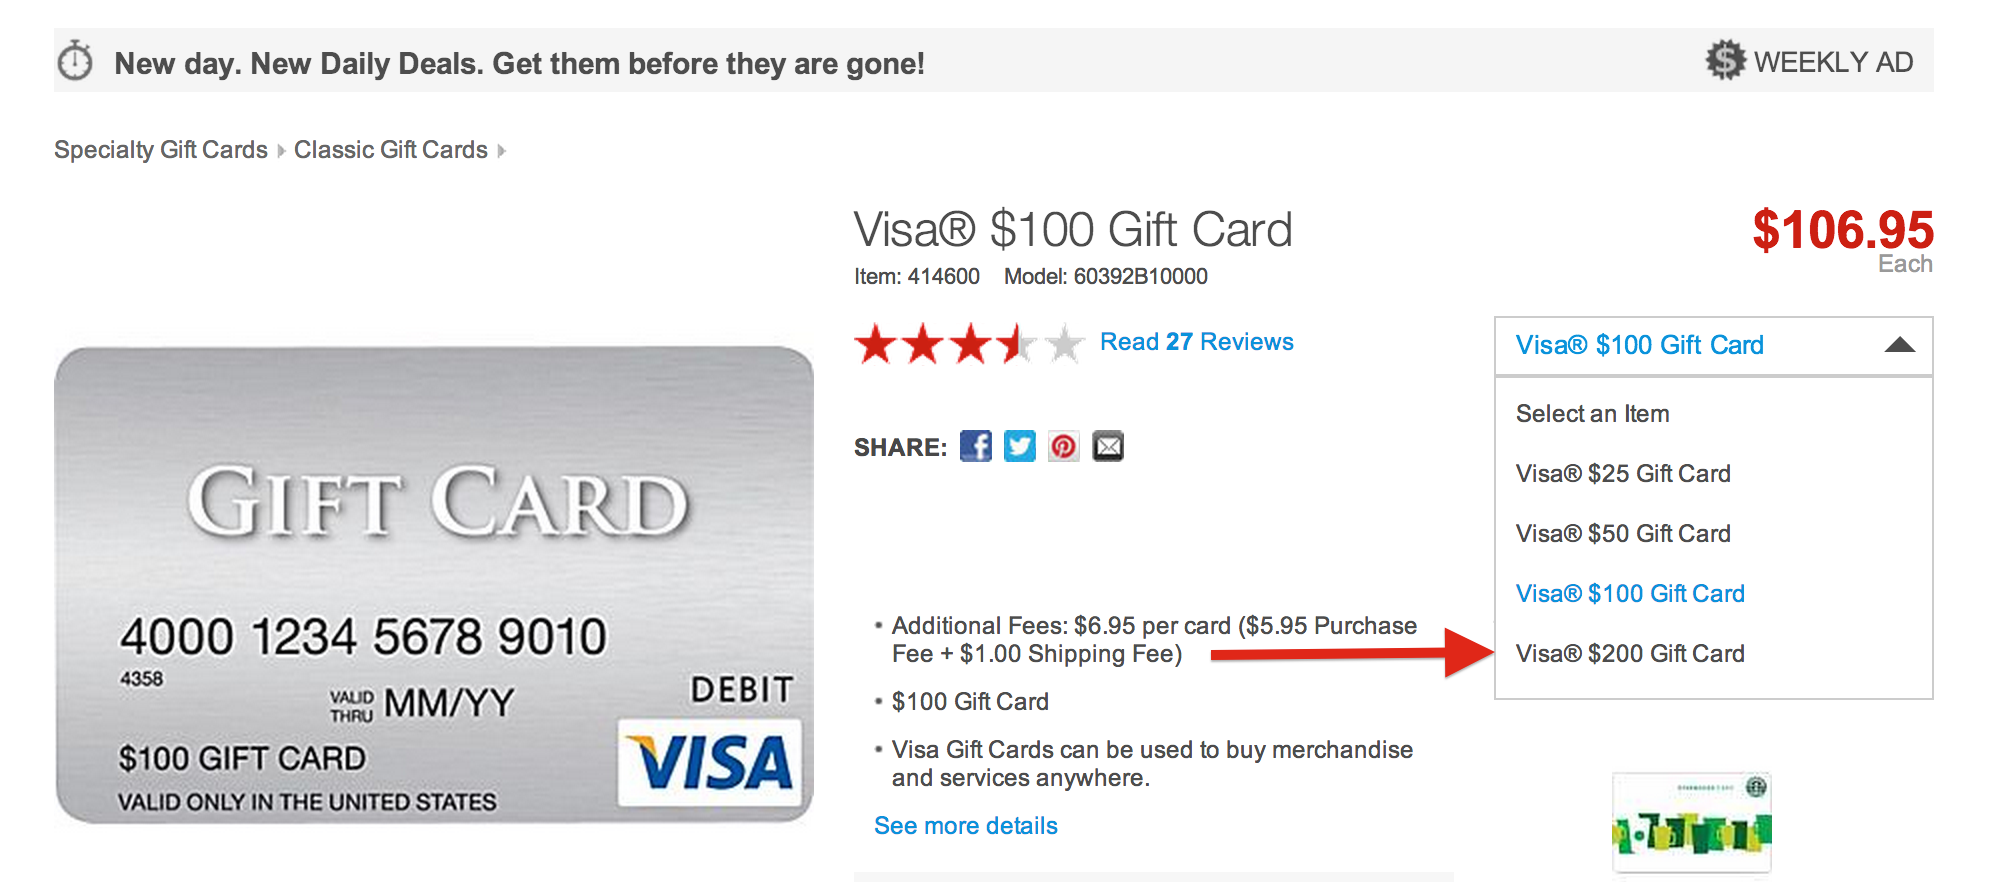 Buy $200 Visa Gift Cards And Earn Big UR Points - Running ...